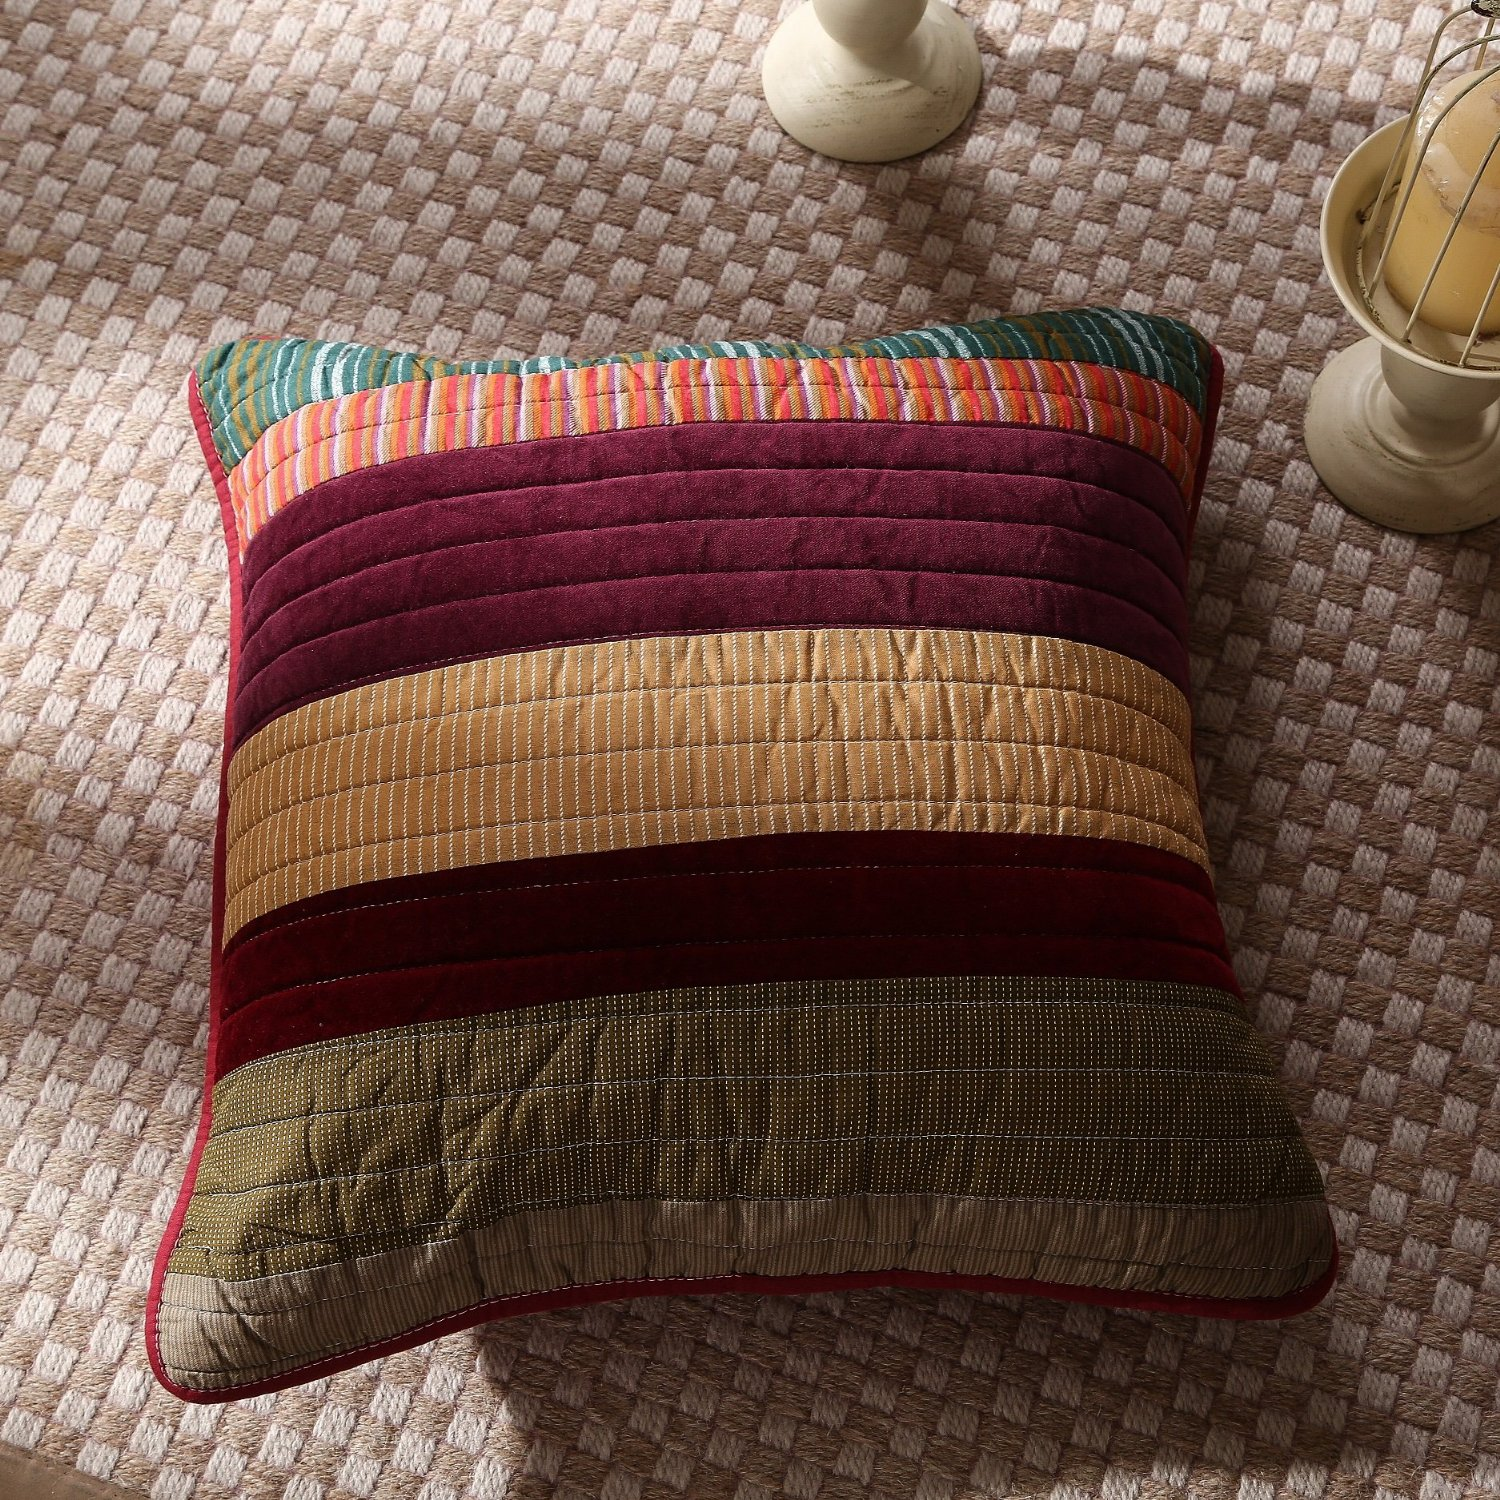 vqm decorative pillows for chairs patterned with throw company target ideas bar sunbrella mozaic navy pillow autumn barbara on stunning barry and outdoor lumbar corded stripes